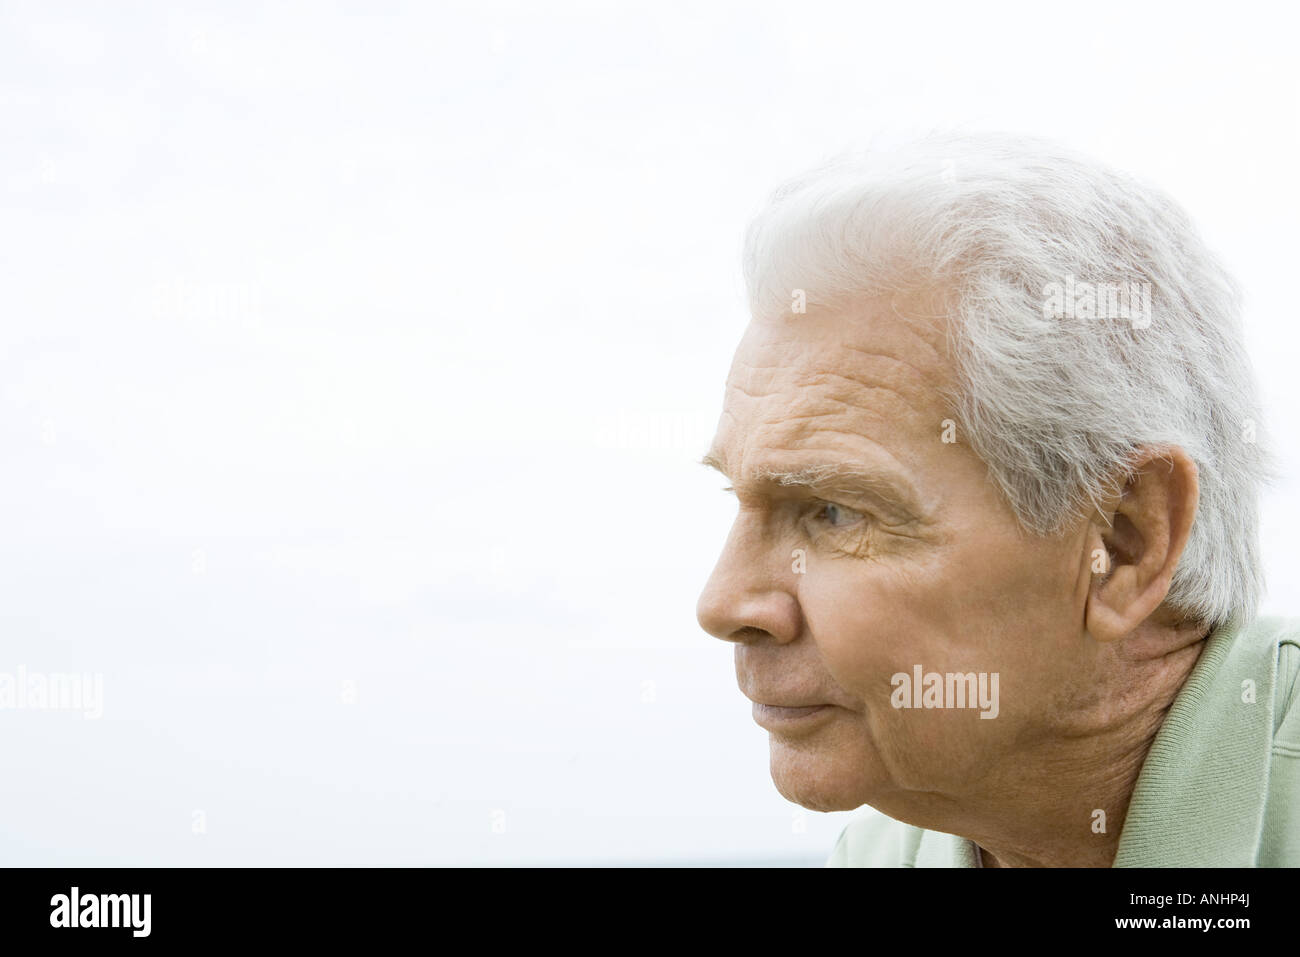 Senior man looking away, profile - Stock Image